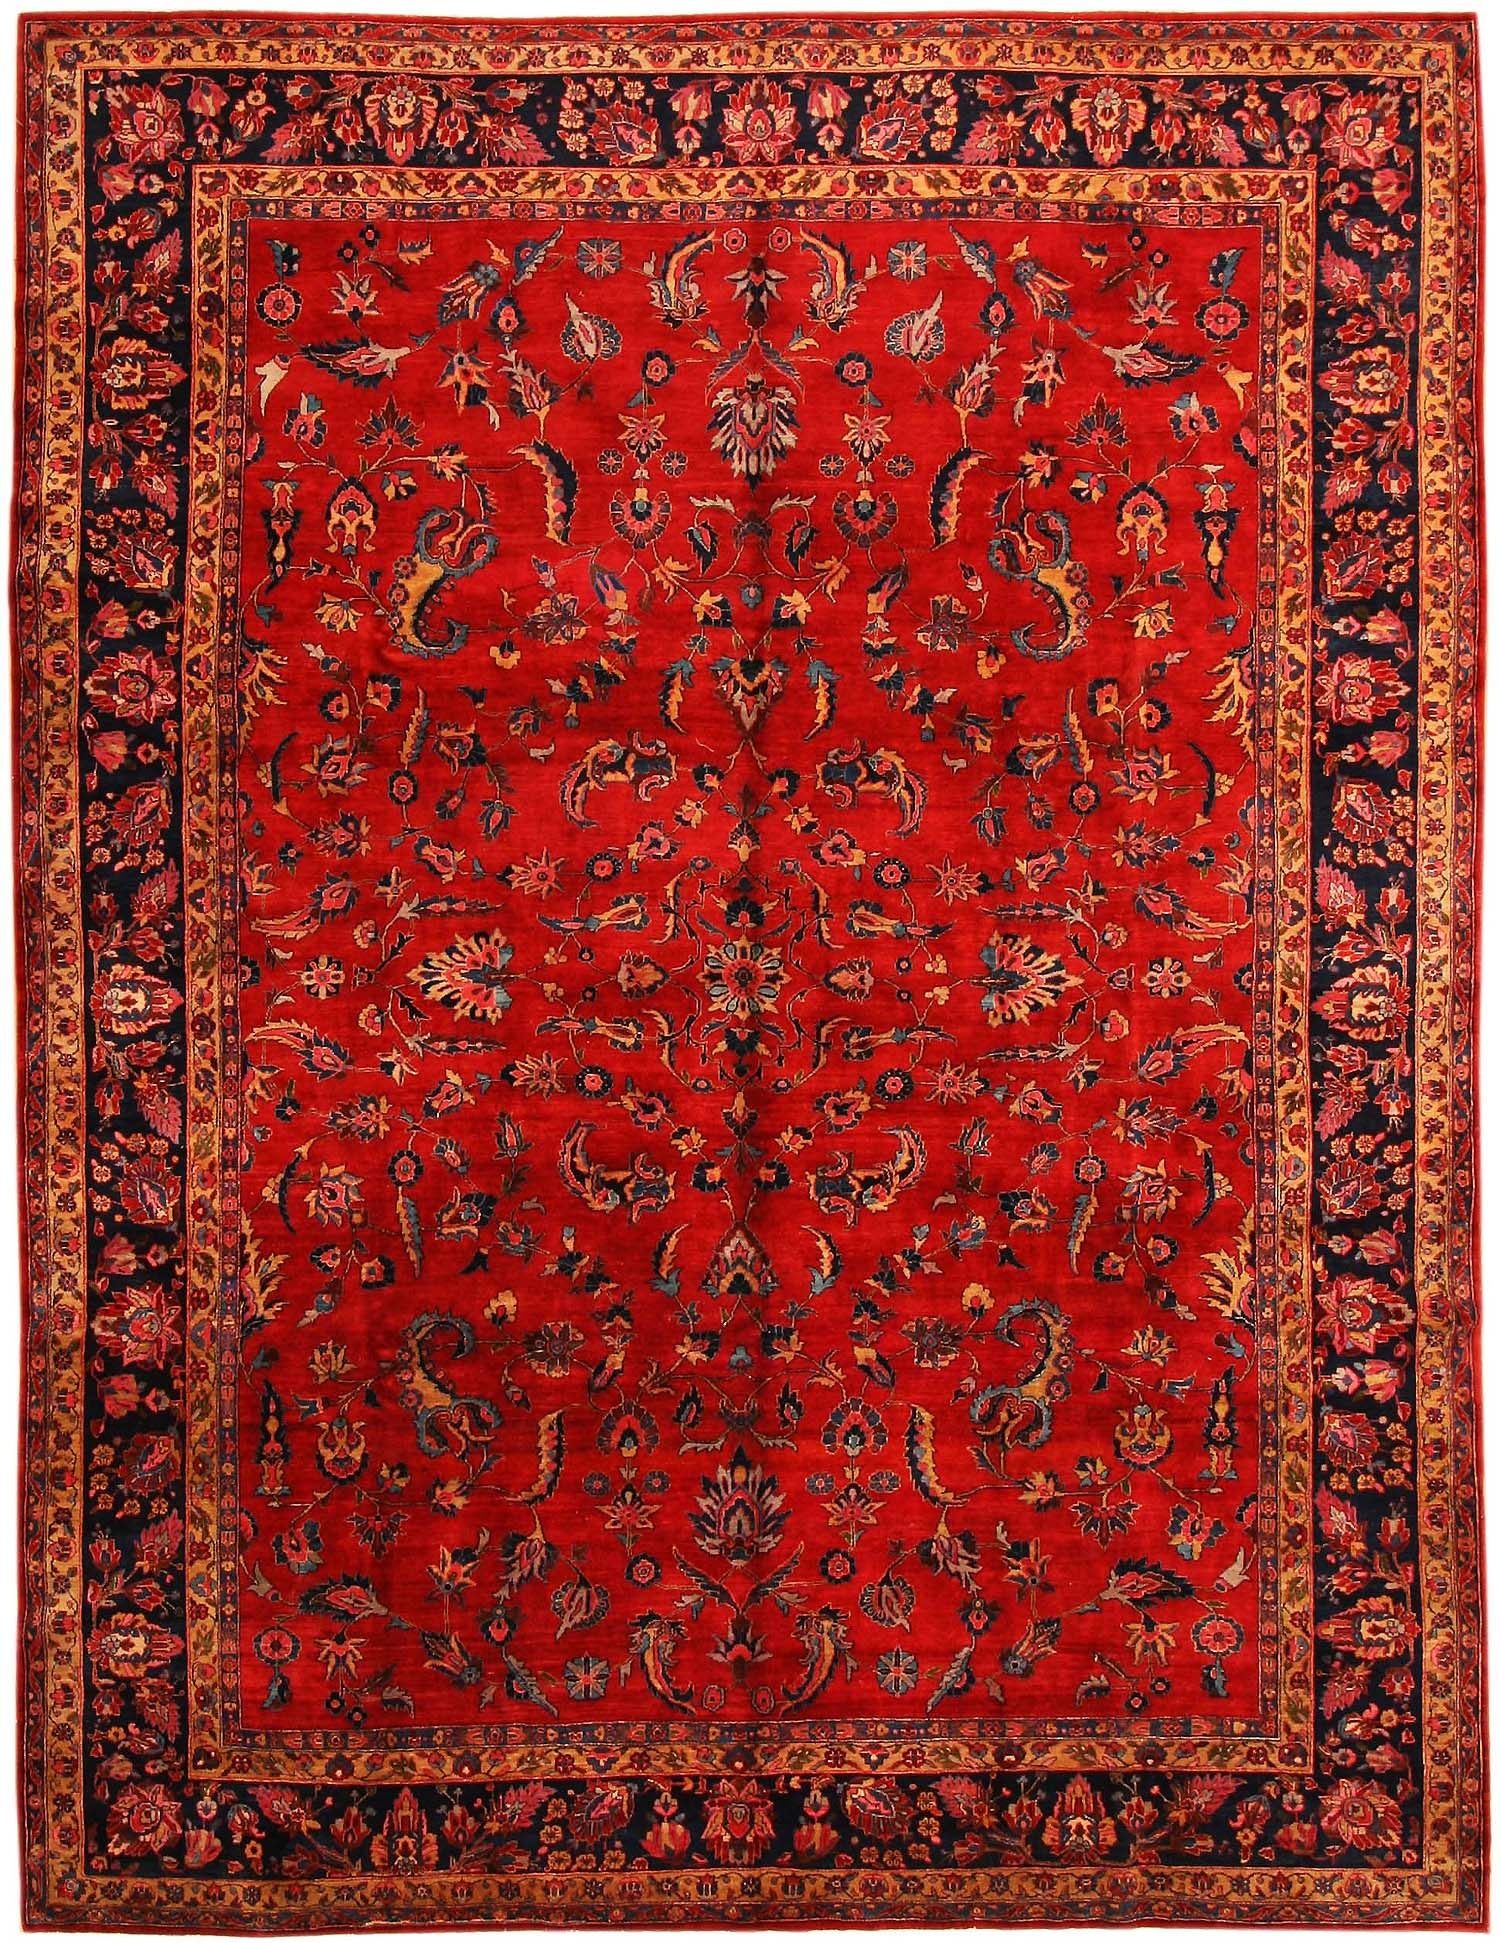 Rugs Persian Style Home Decors Collection With Regard To Persian Style Wool Rugs (Image 14 of 15)